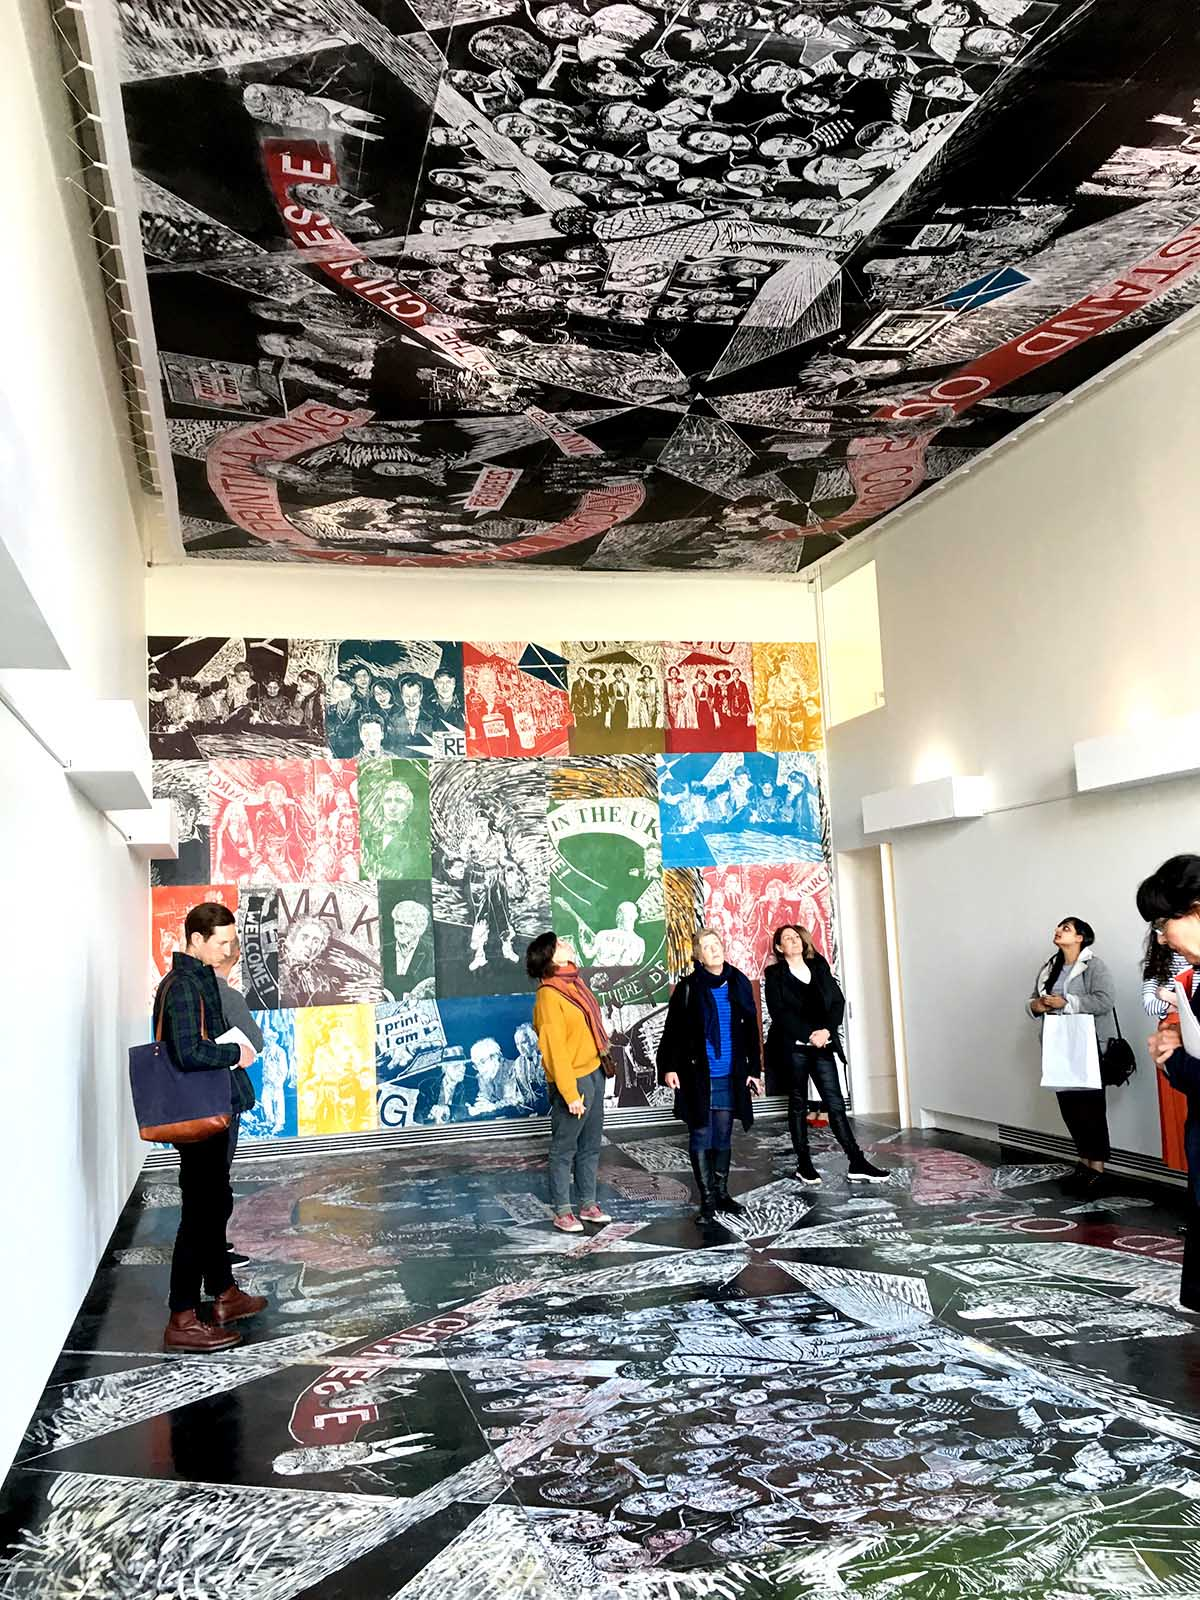 Gallery 1 view of Thomas Kilpper: Th Politics of Heritage vs. the Heritage of Politics (rubber floor carving and wall/ceiling prints) 2019